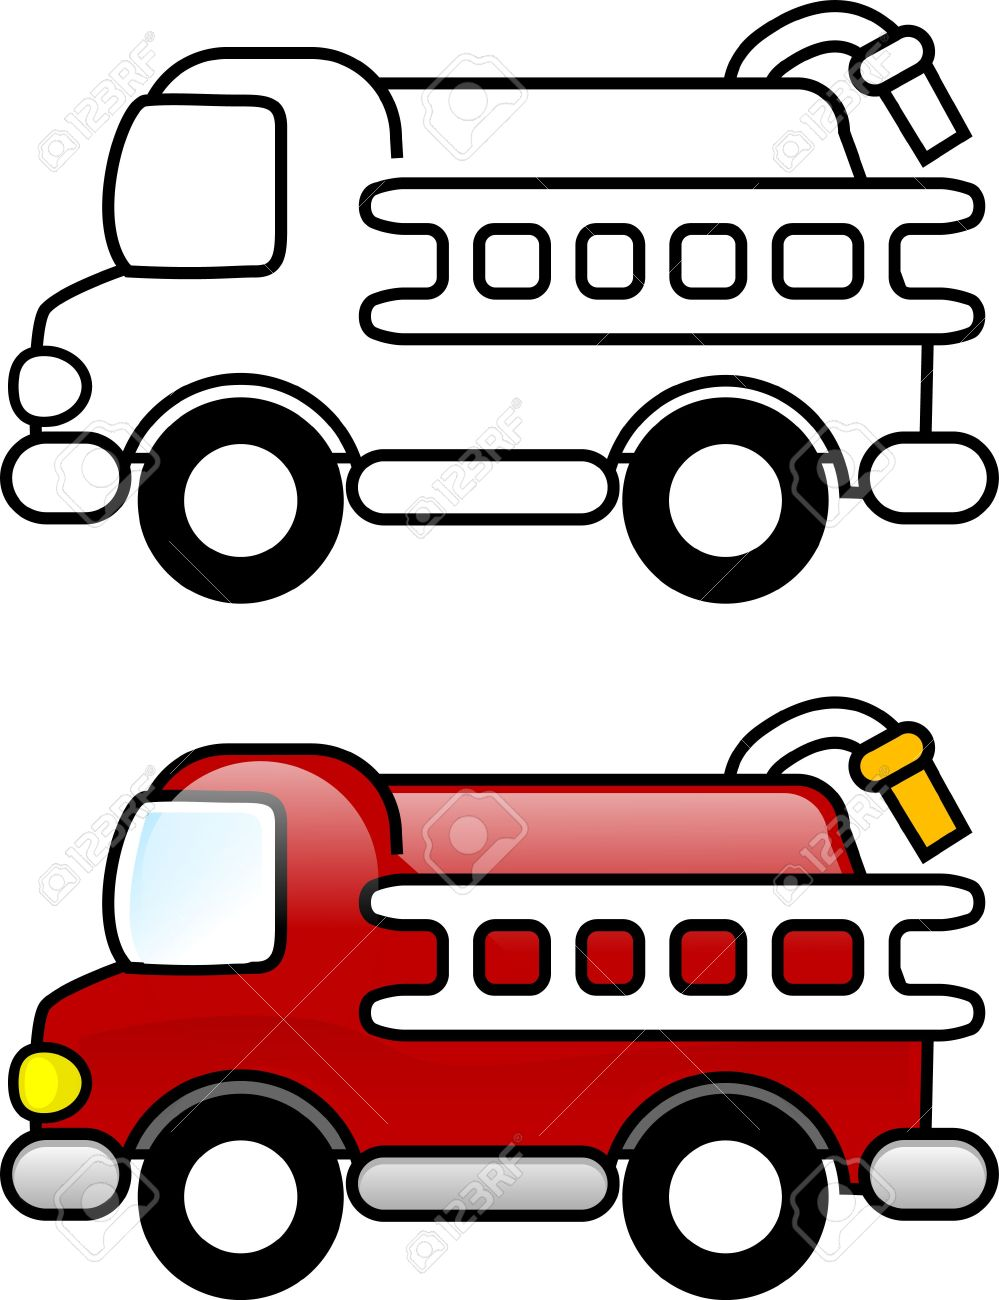 Uncategorized Fire Truck Coloring Pages Printable fire engine coloring pages print murderthestout truck printable page for children or you can